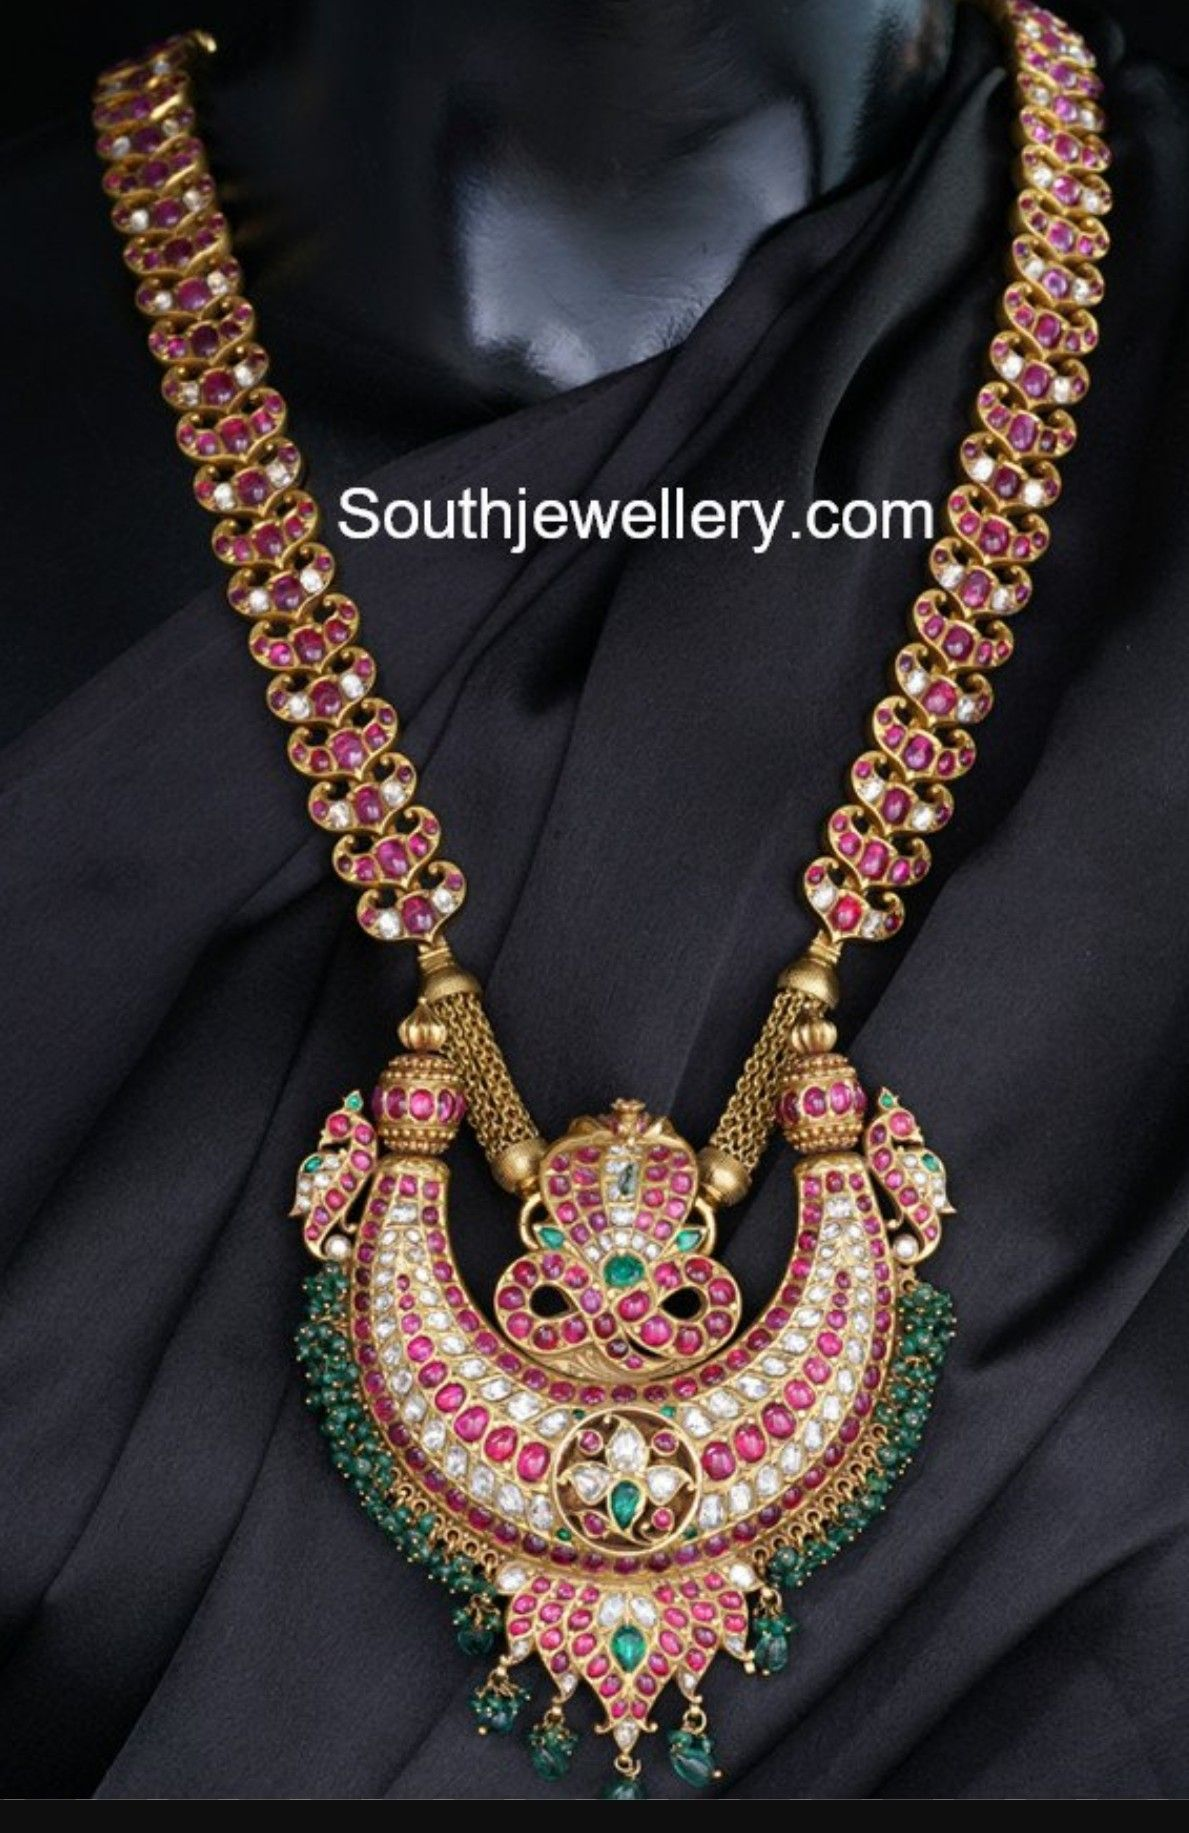 6196c918b123b Antique heavy necklace with potatoes rubies diamonds and emarald ...